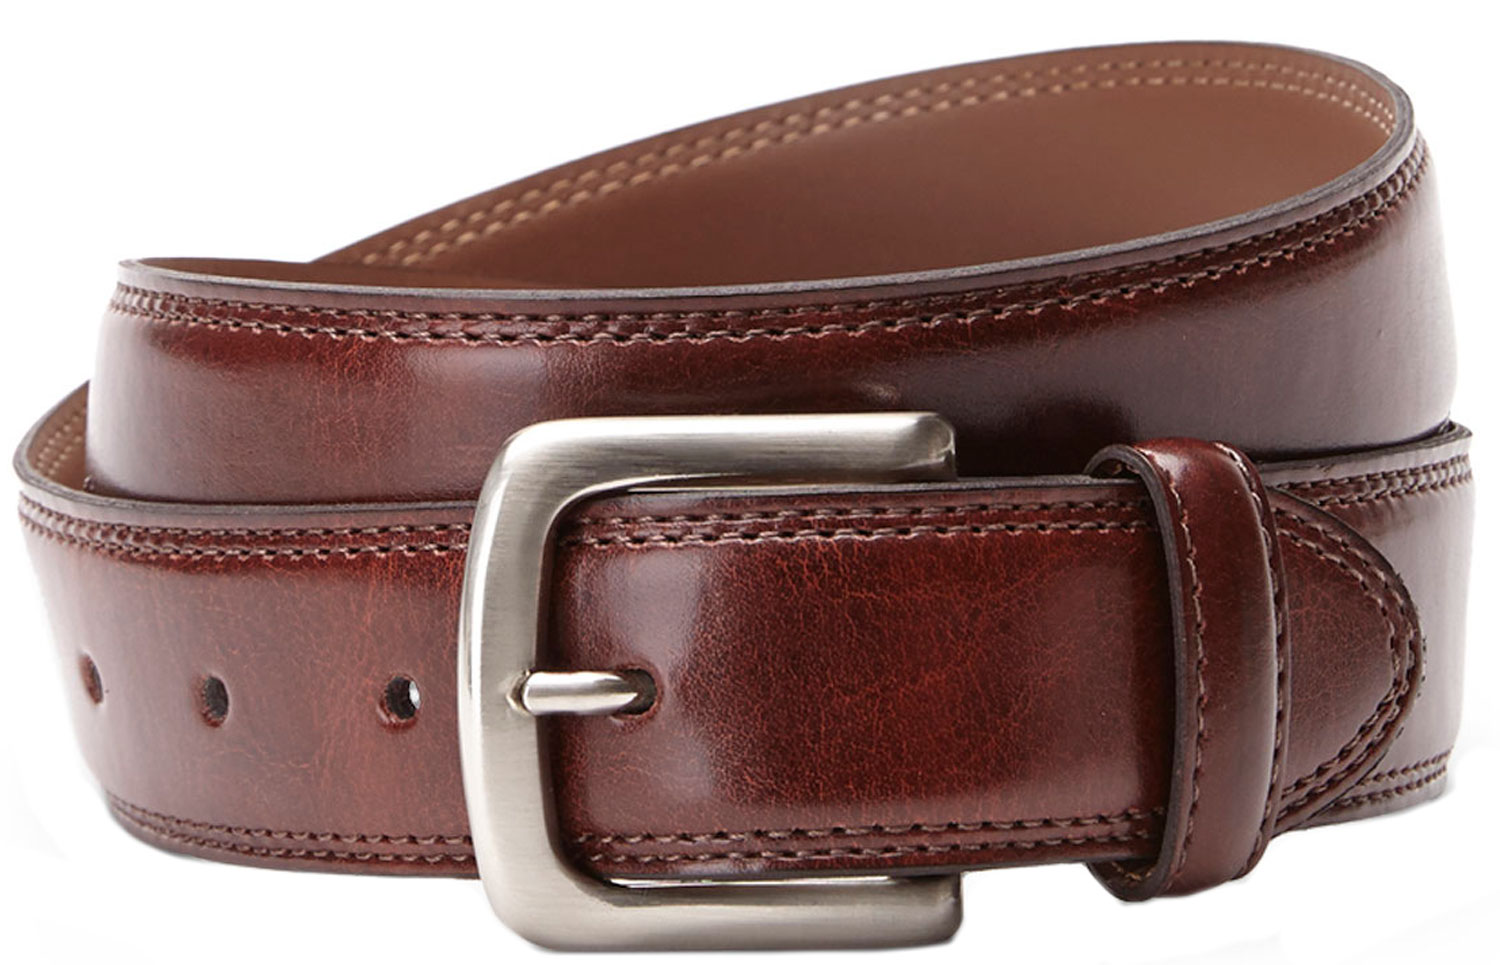 Bosca B03724 03 Men's Brown Genuine Leather Belt M